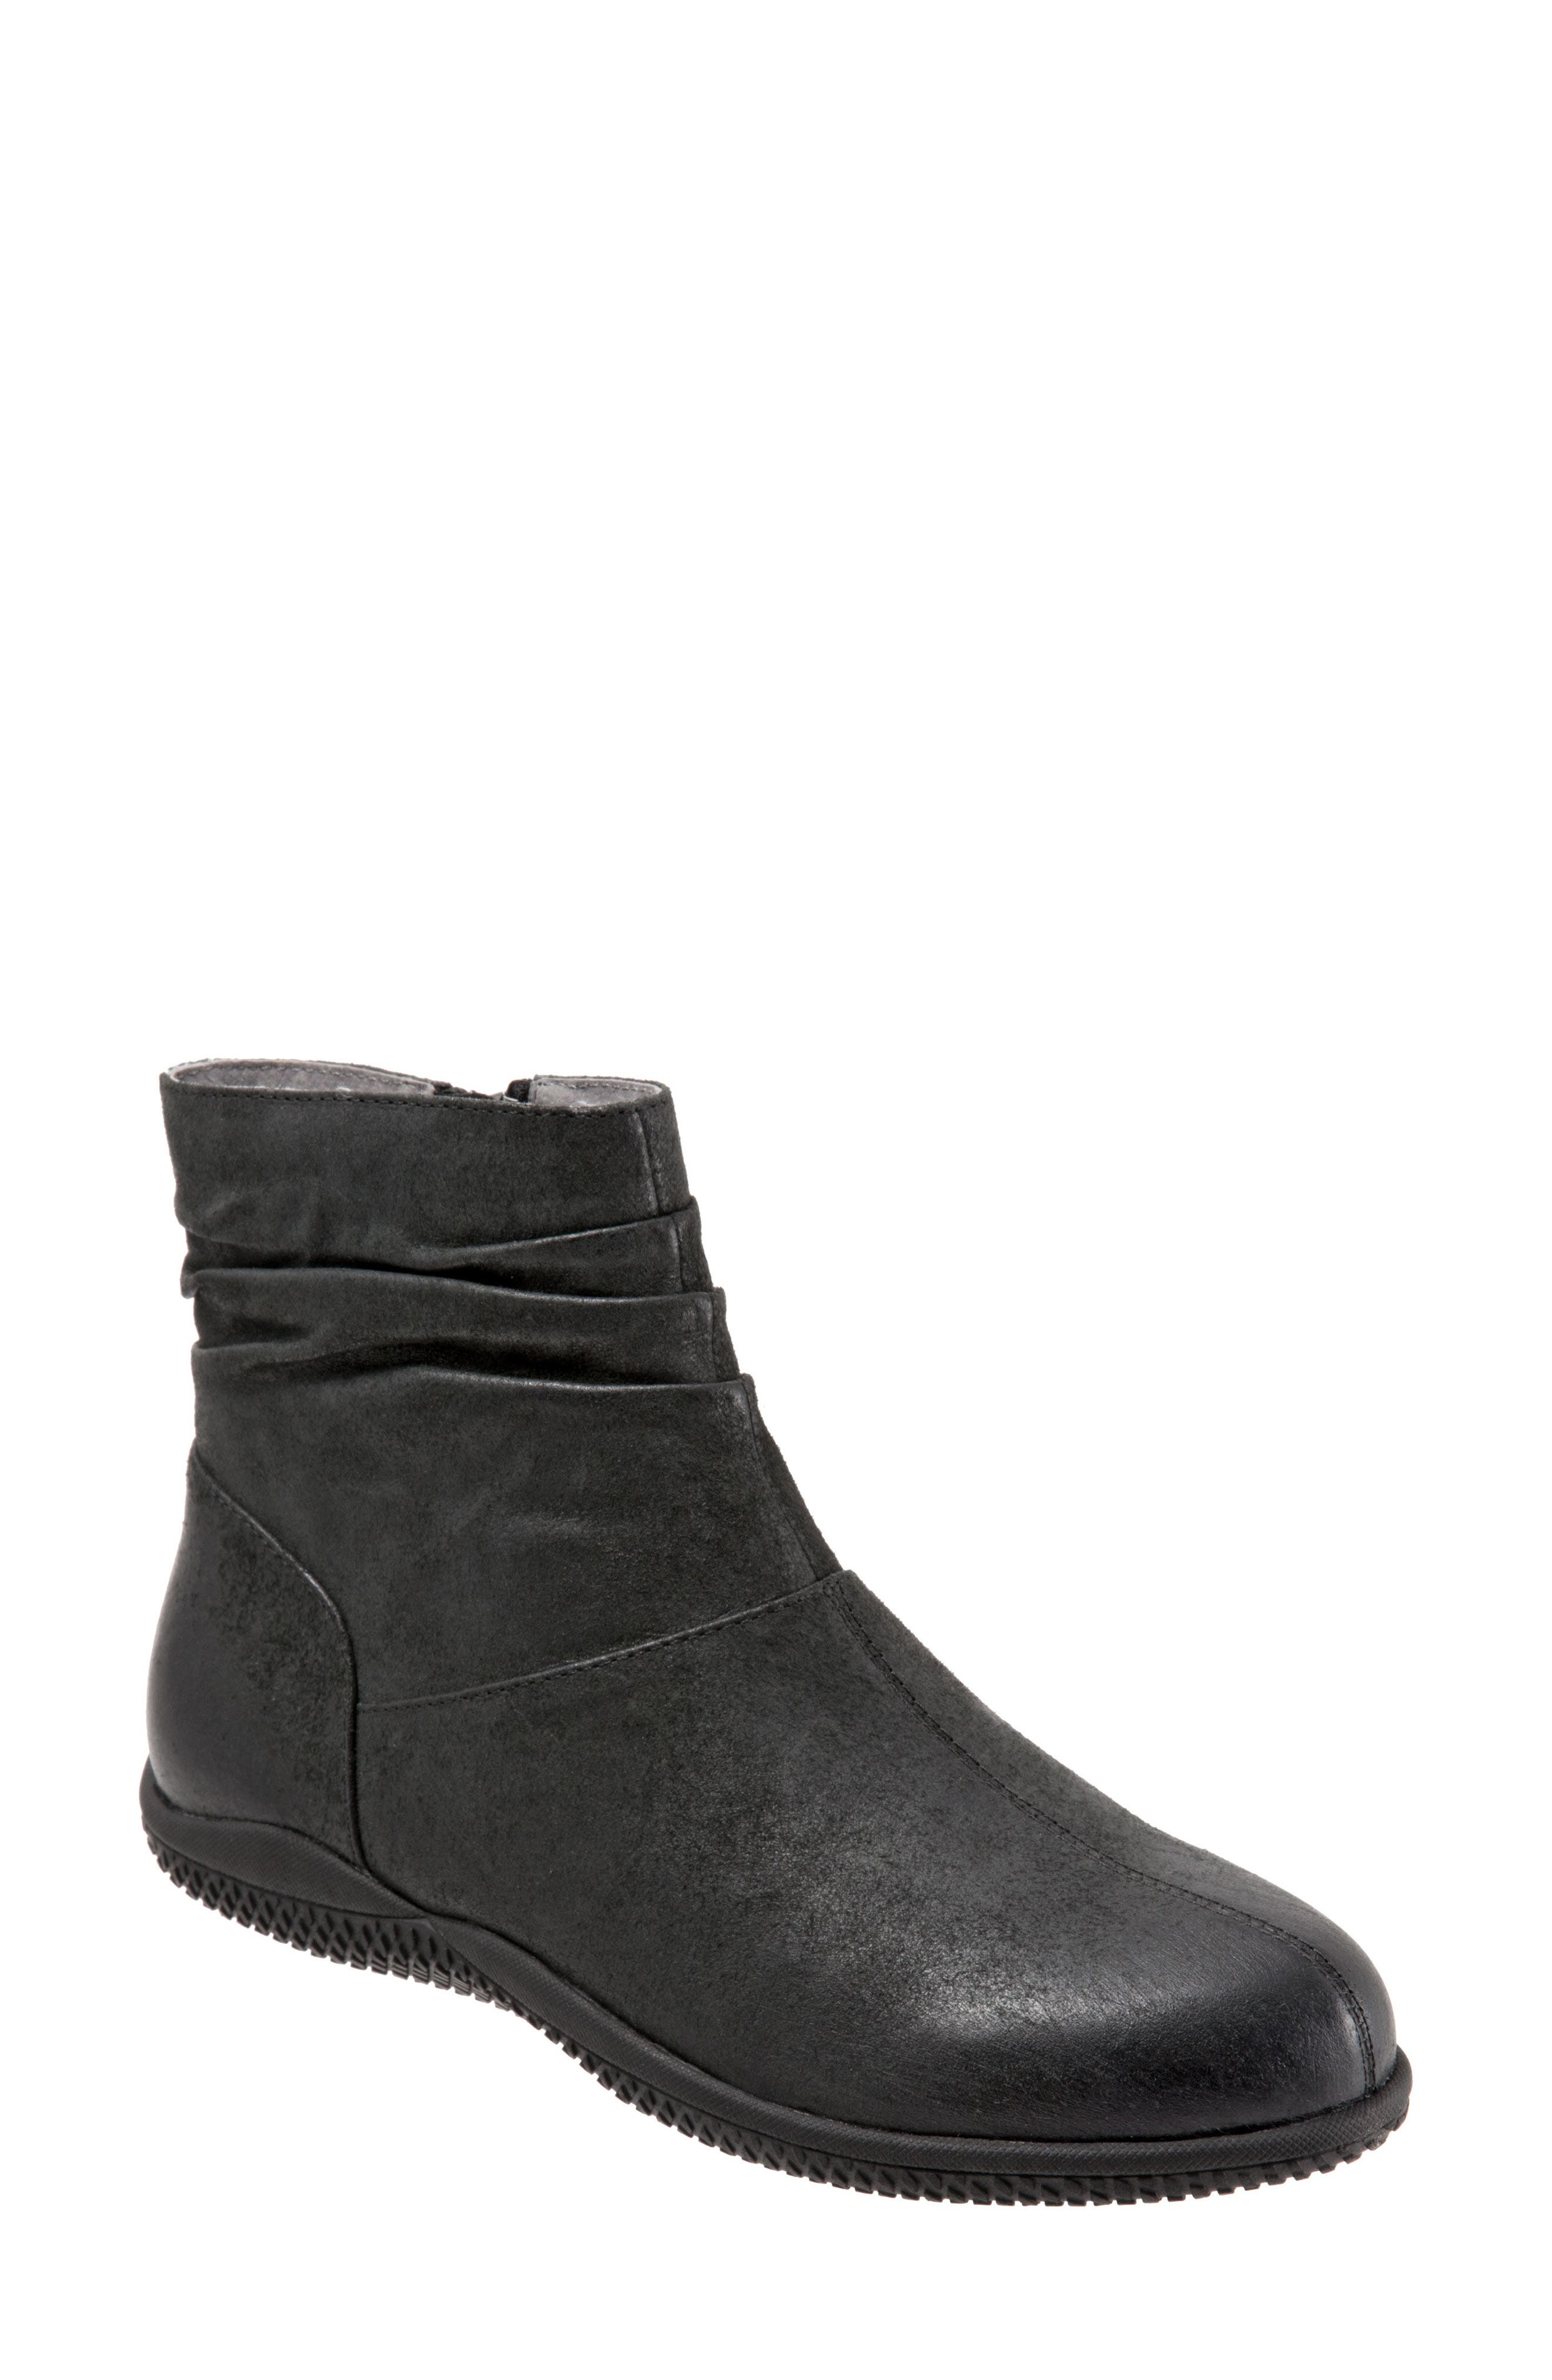 'Hanover' Leather Boot,                         Main,                         color, 006